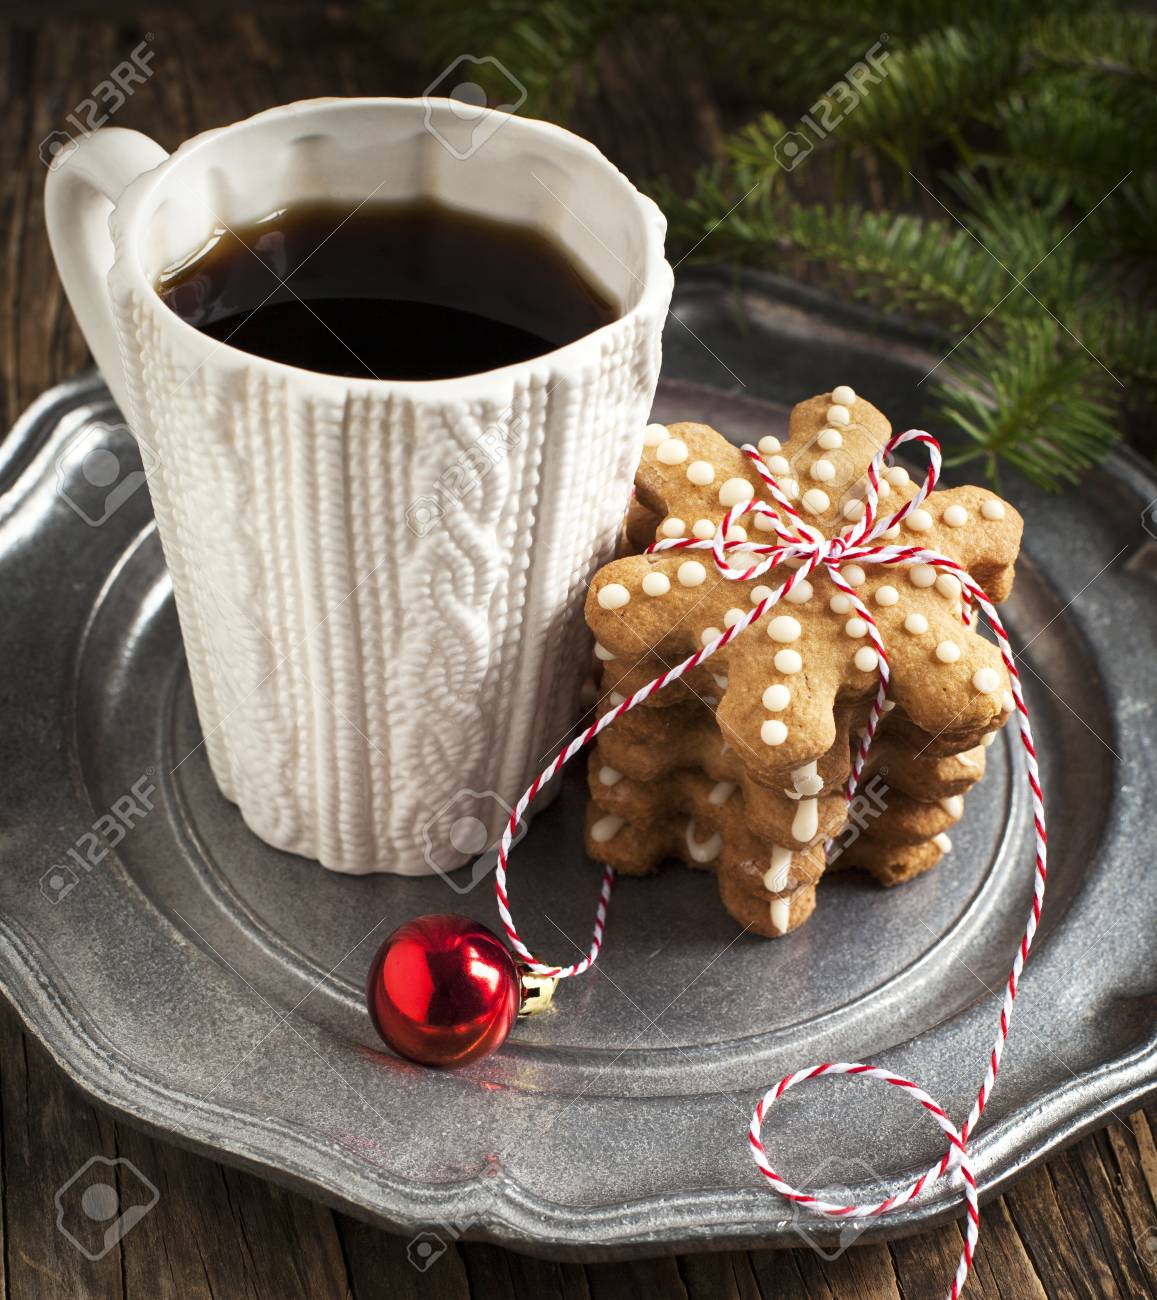 Christmas Cookies And Cup Of Coffee Stock Photo Picture And Royalty Free Image Image 34543955